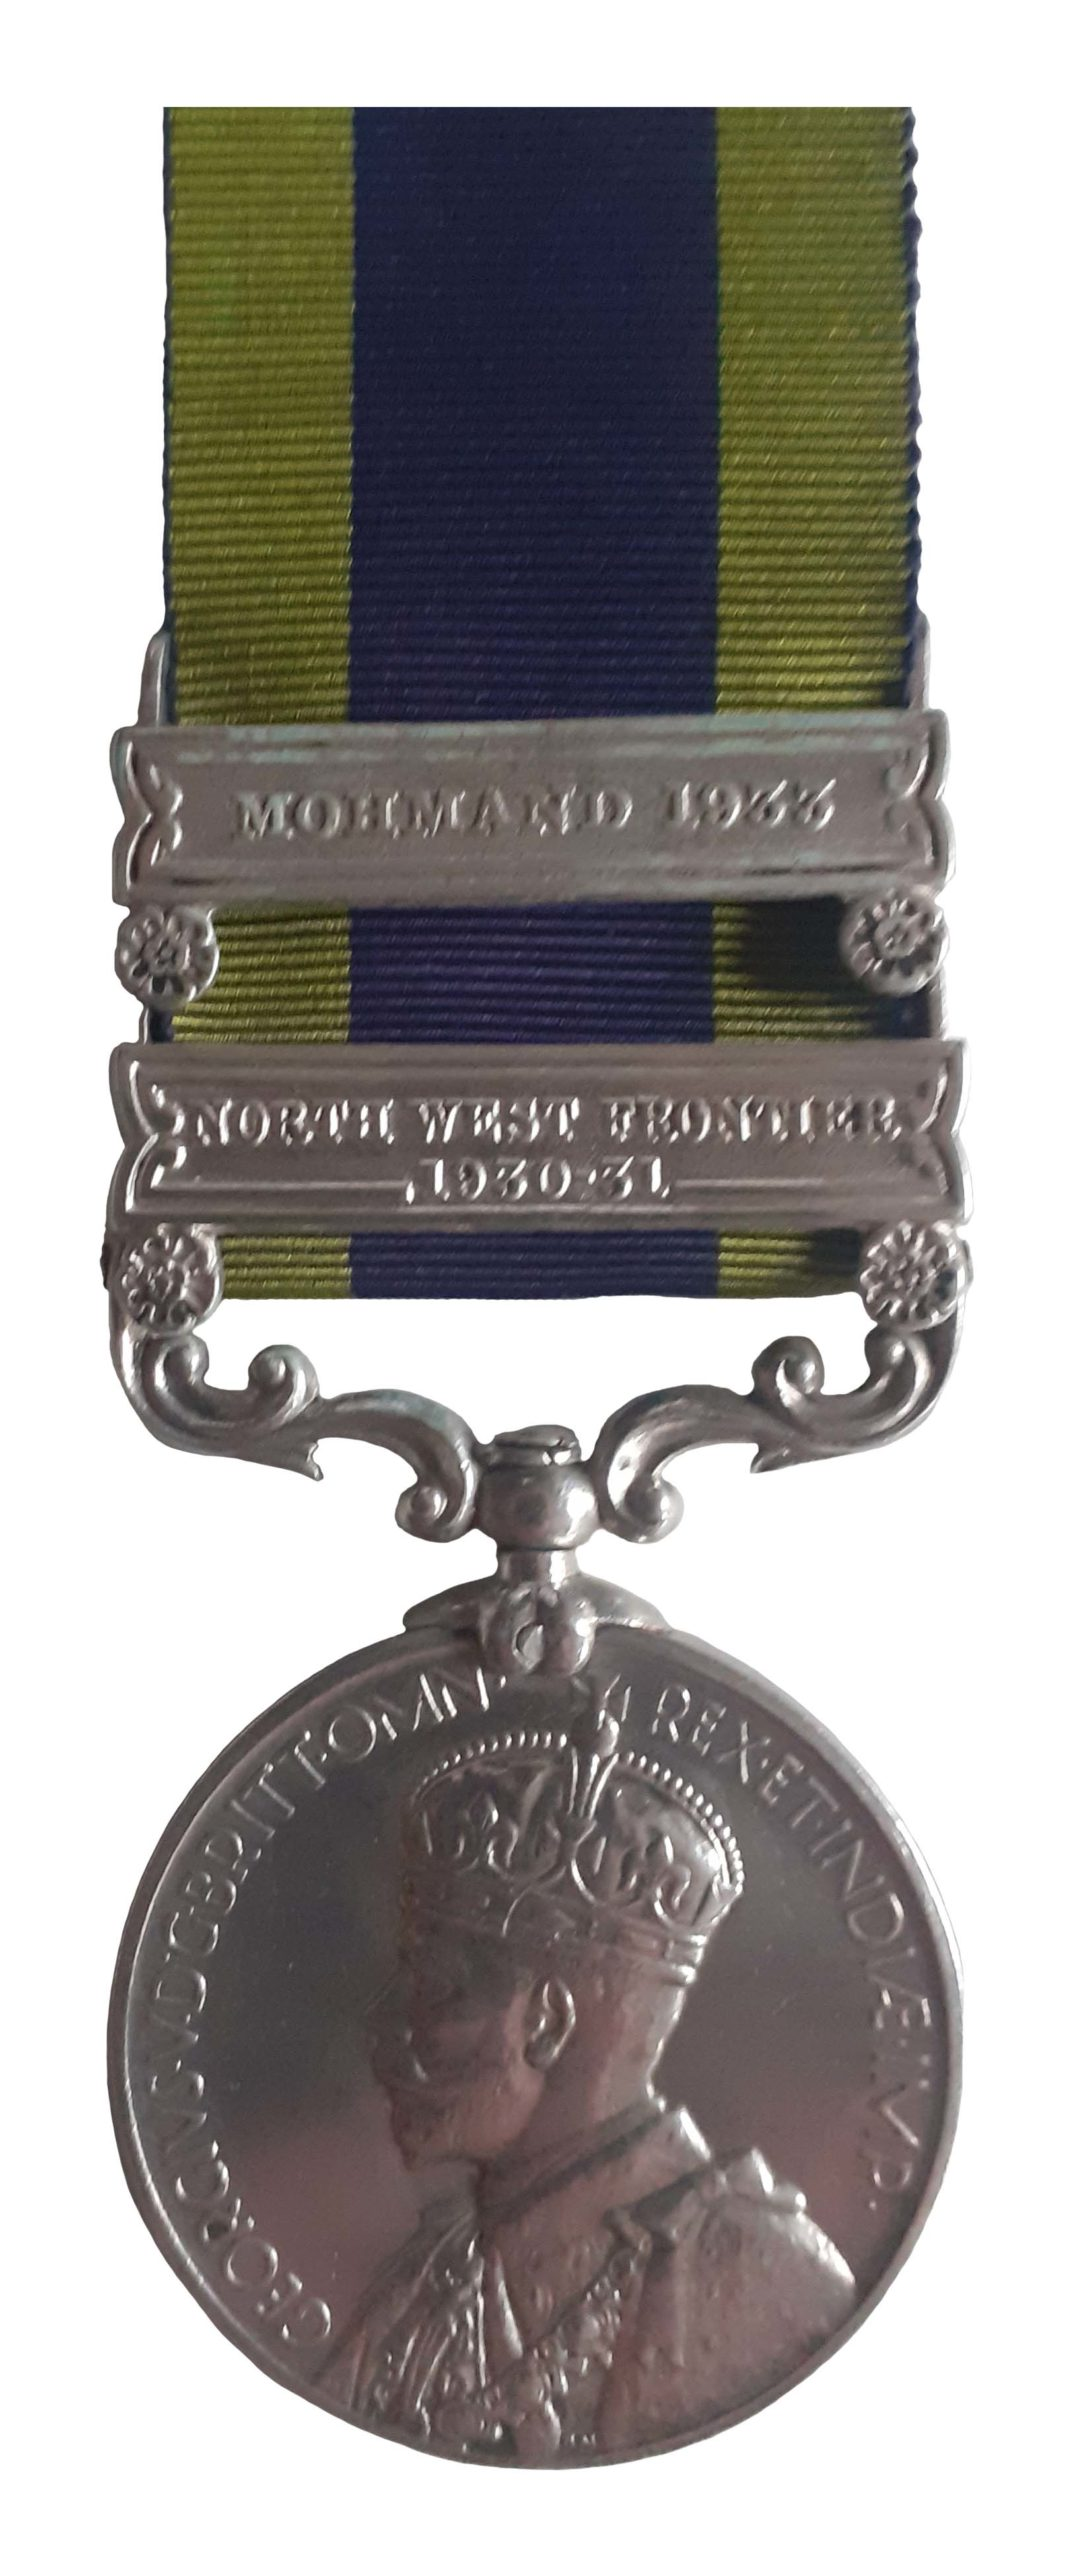 India General Service Medal, 1908-35, GVR, to Driver Anant Ram